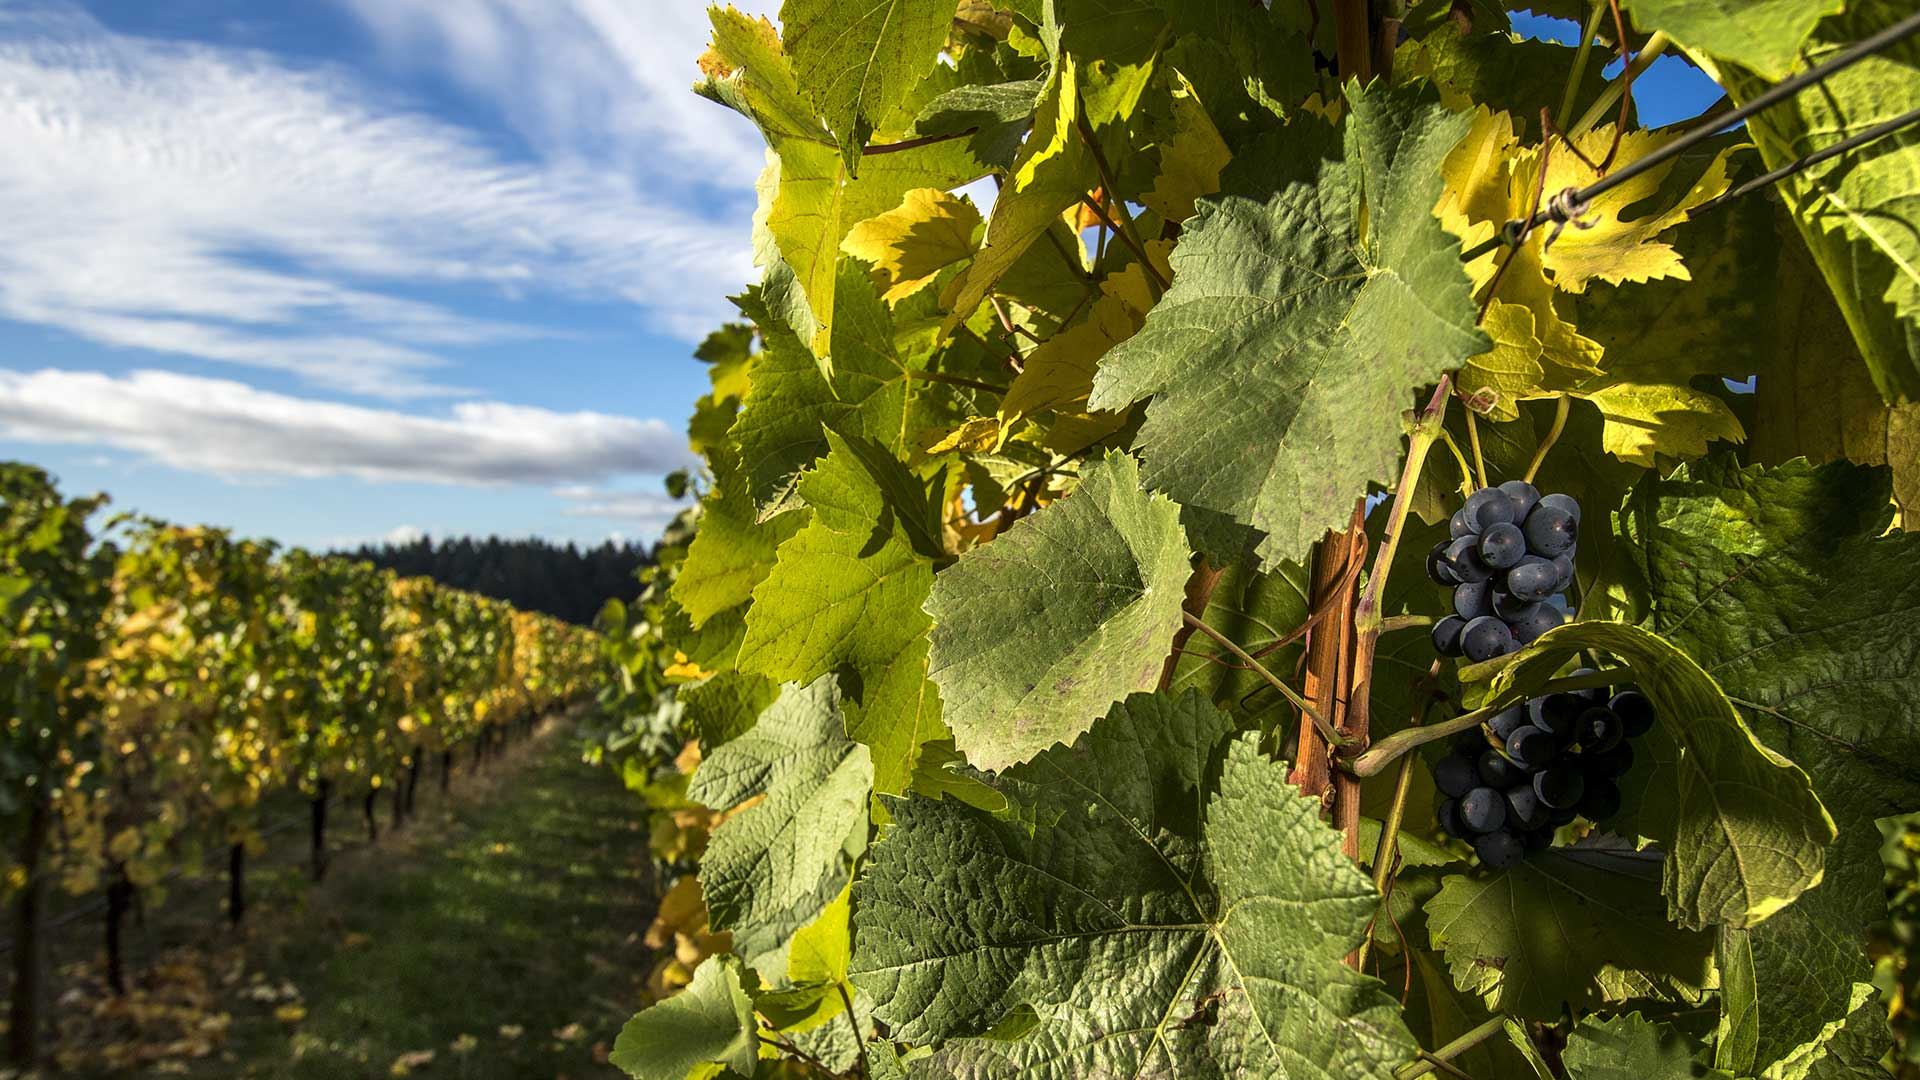 Oregon Wine Country: winery grapes on the vine